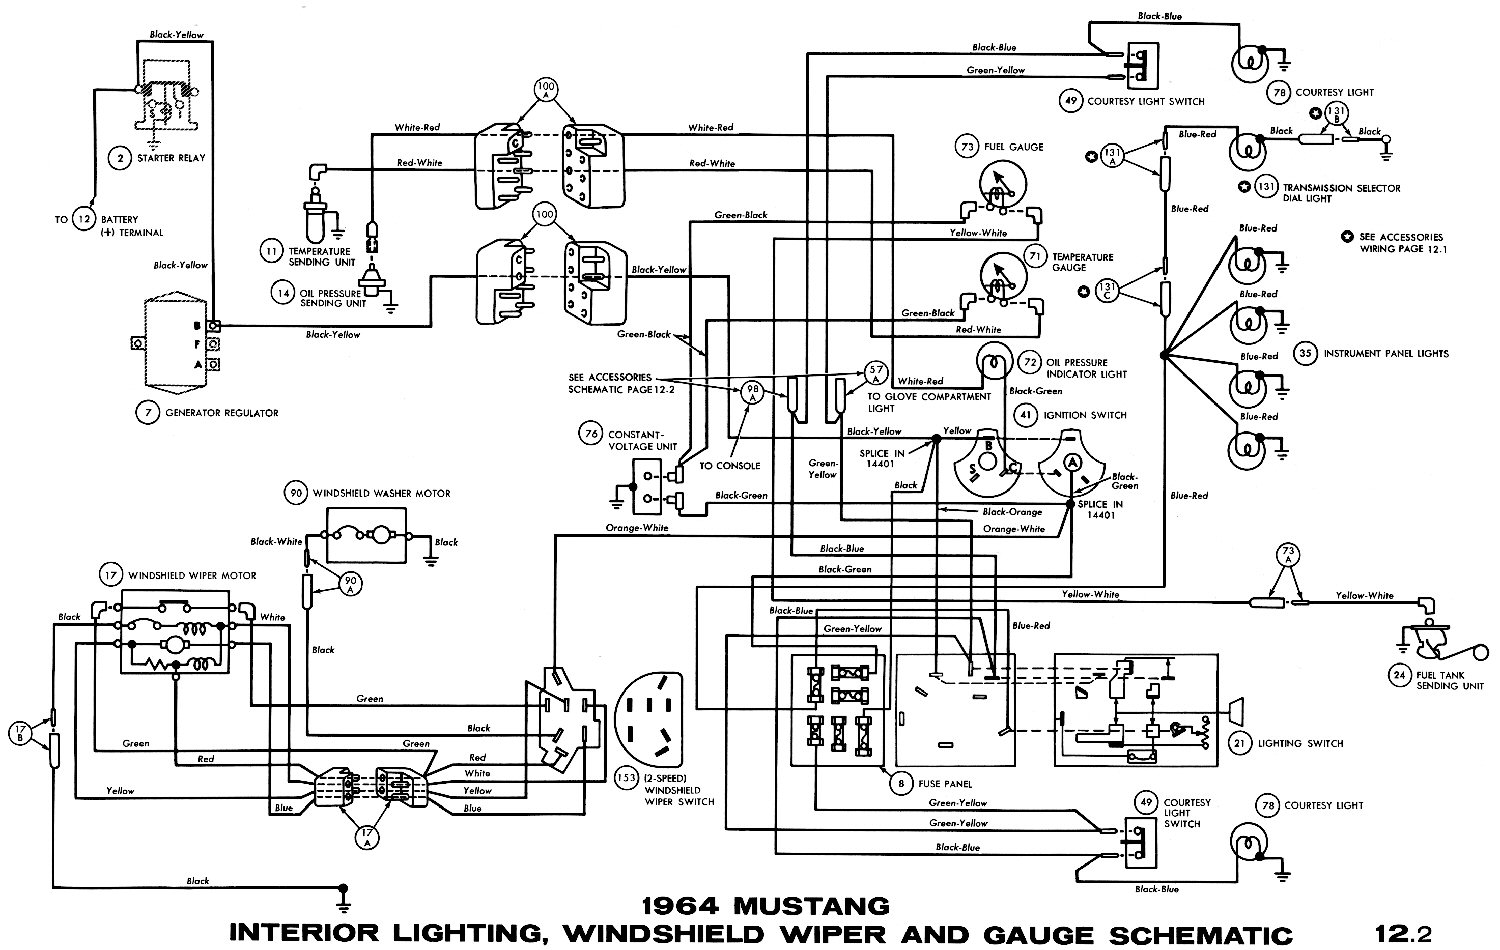 1964k 1966 mustang wiring diagram 1967 mustang wiring schematic \u2022 wiring mustang wiring diagrams at gsmx.co